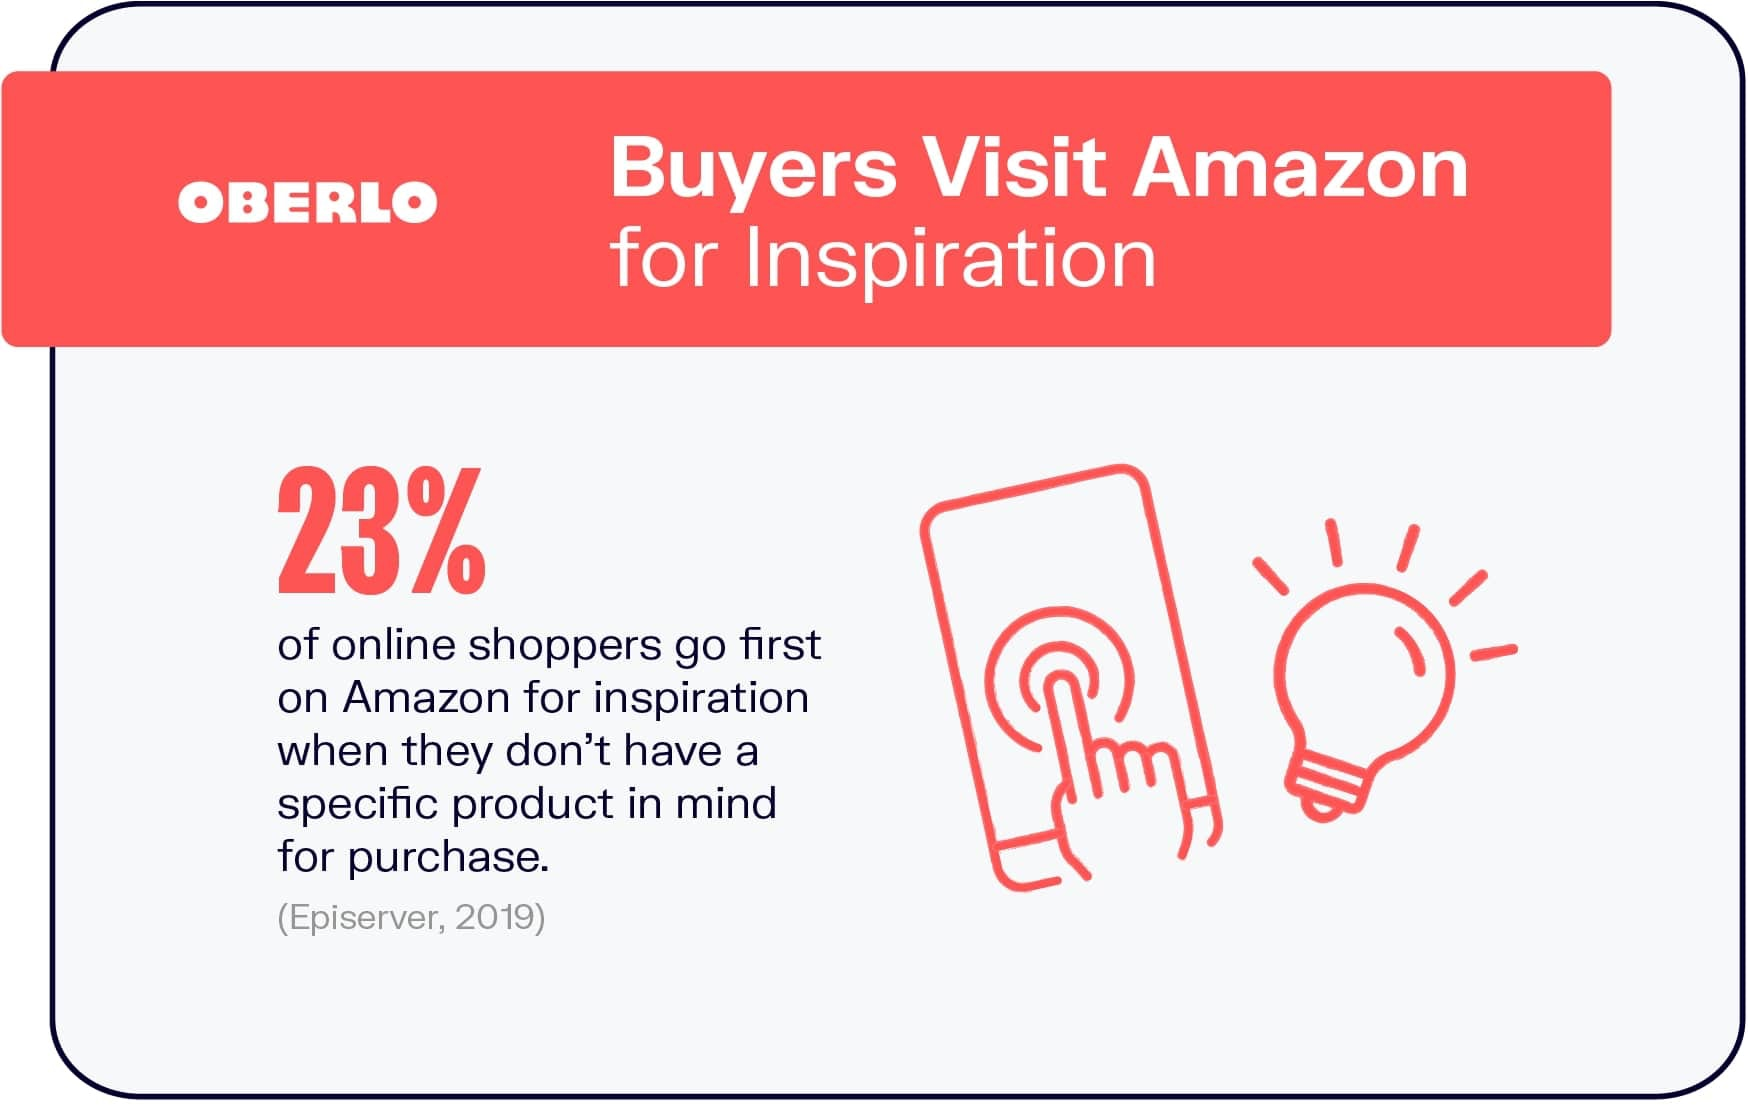 Buyers Visit Amazon for Inspiration